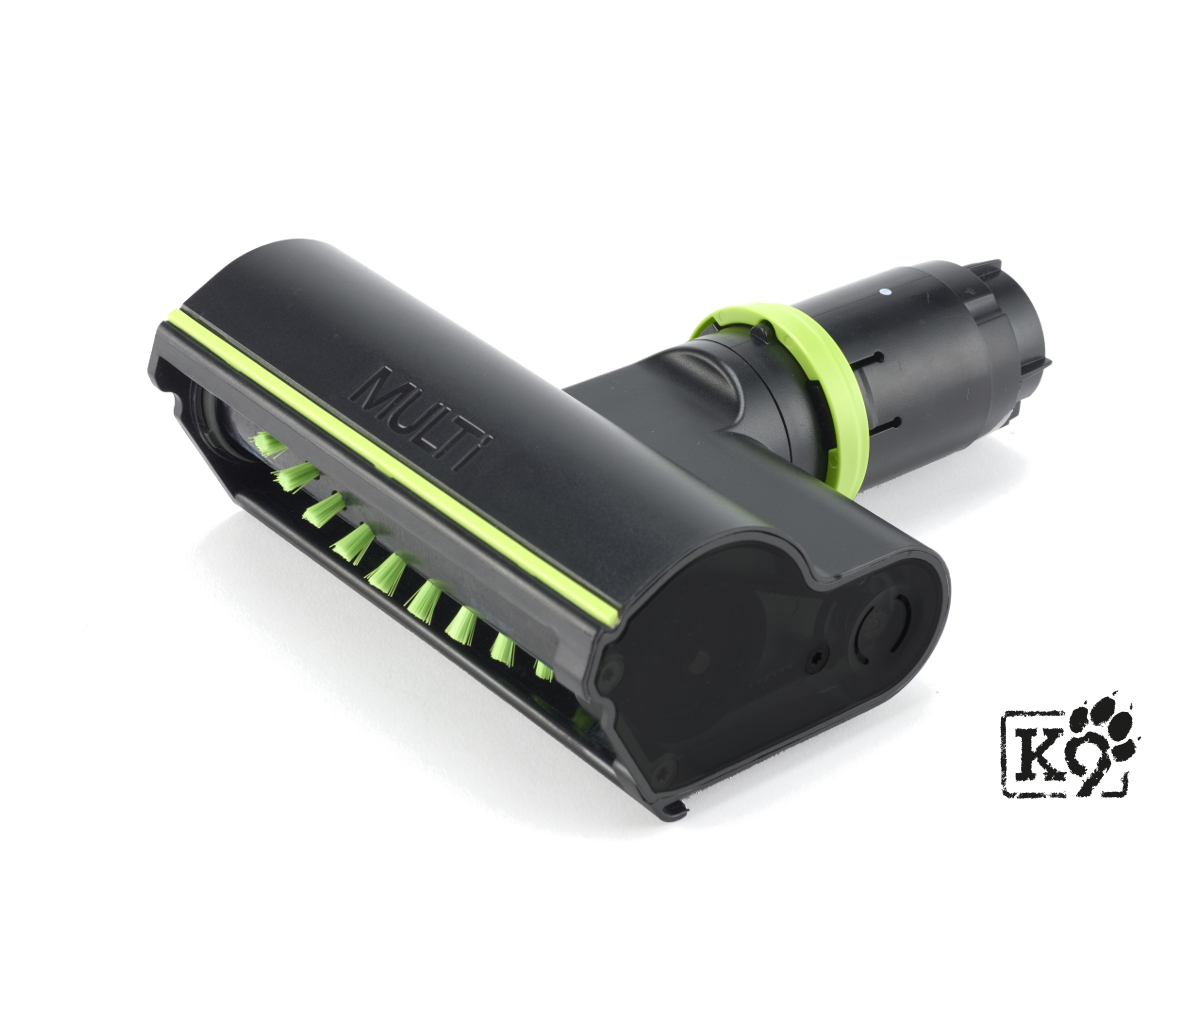 Gtech powerful rotating brush K9